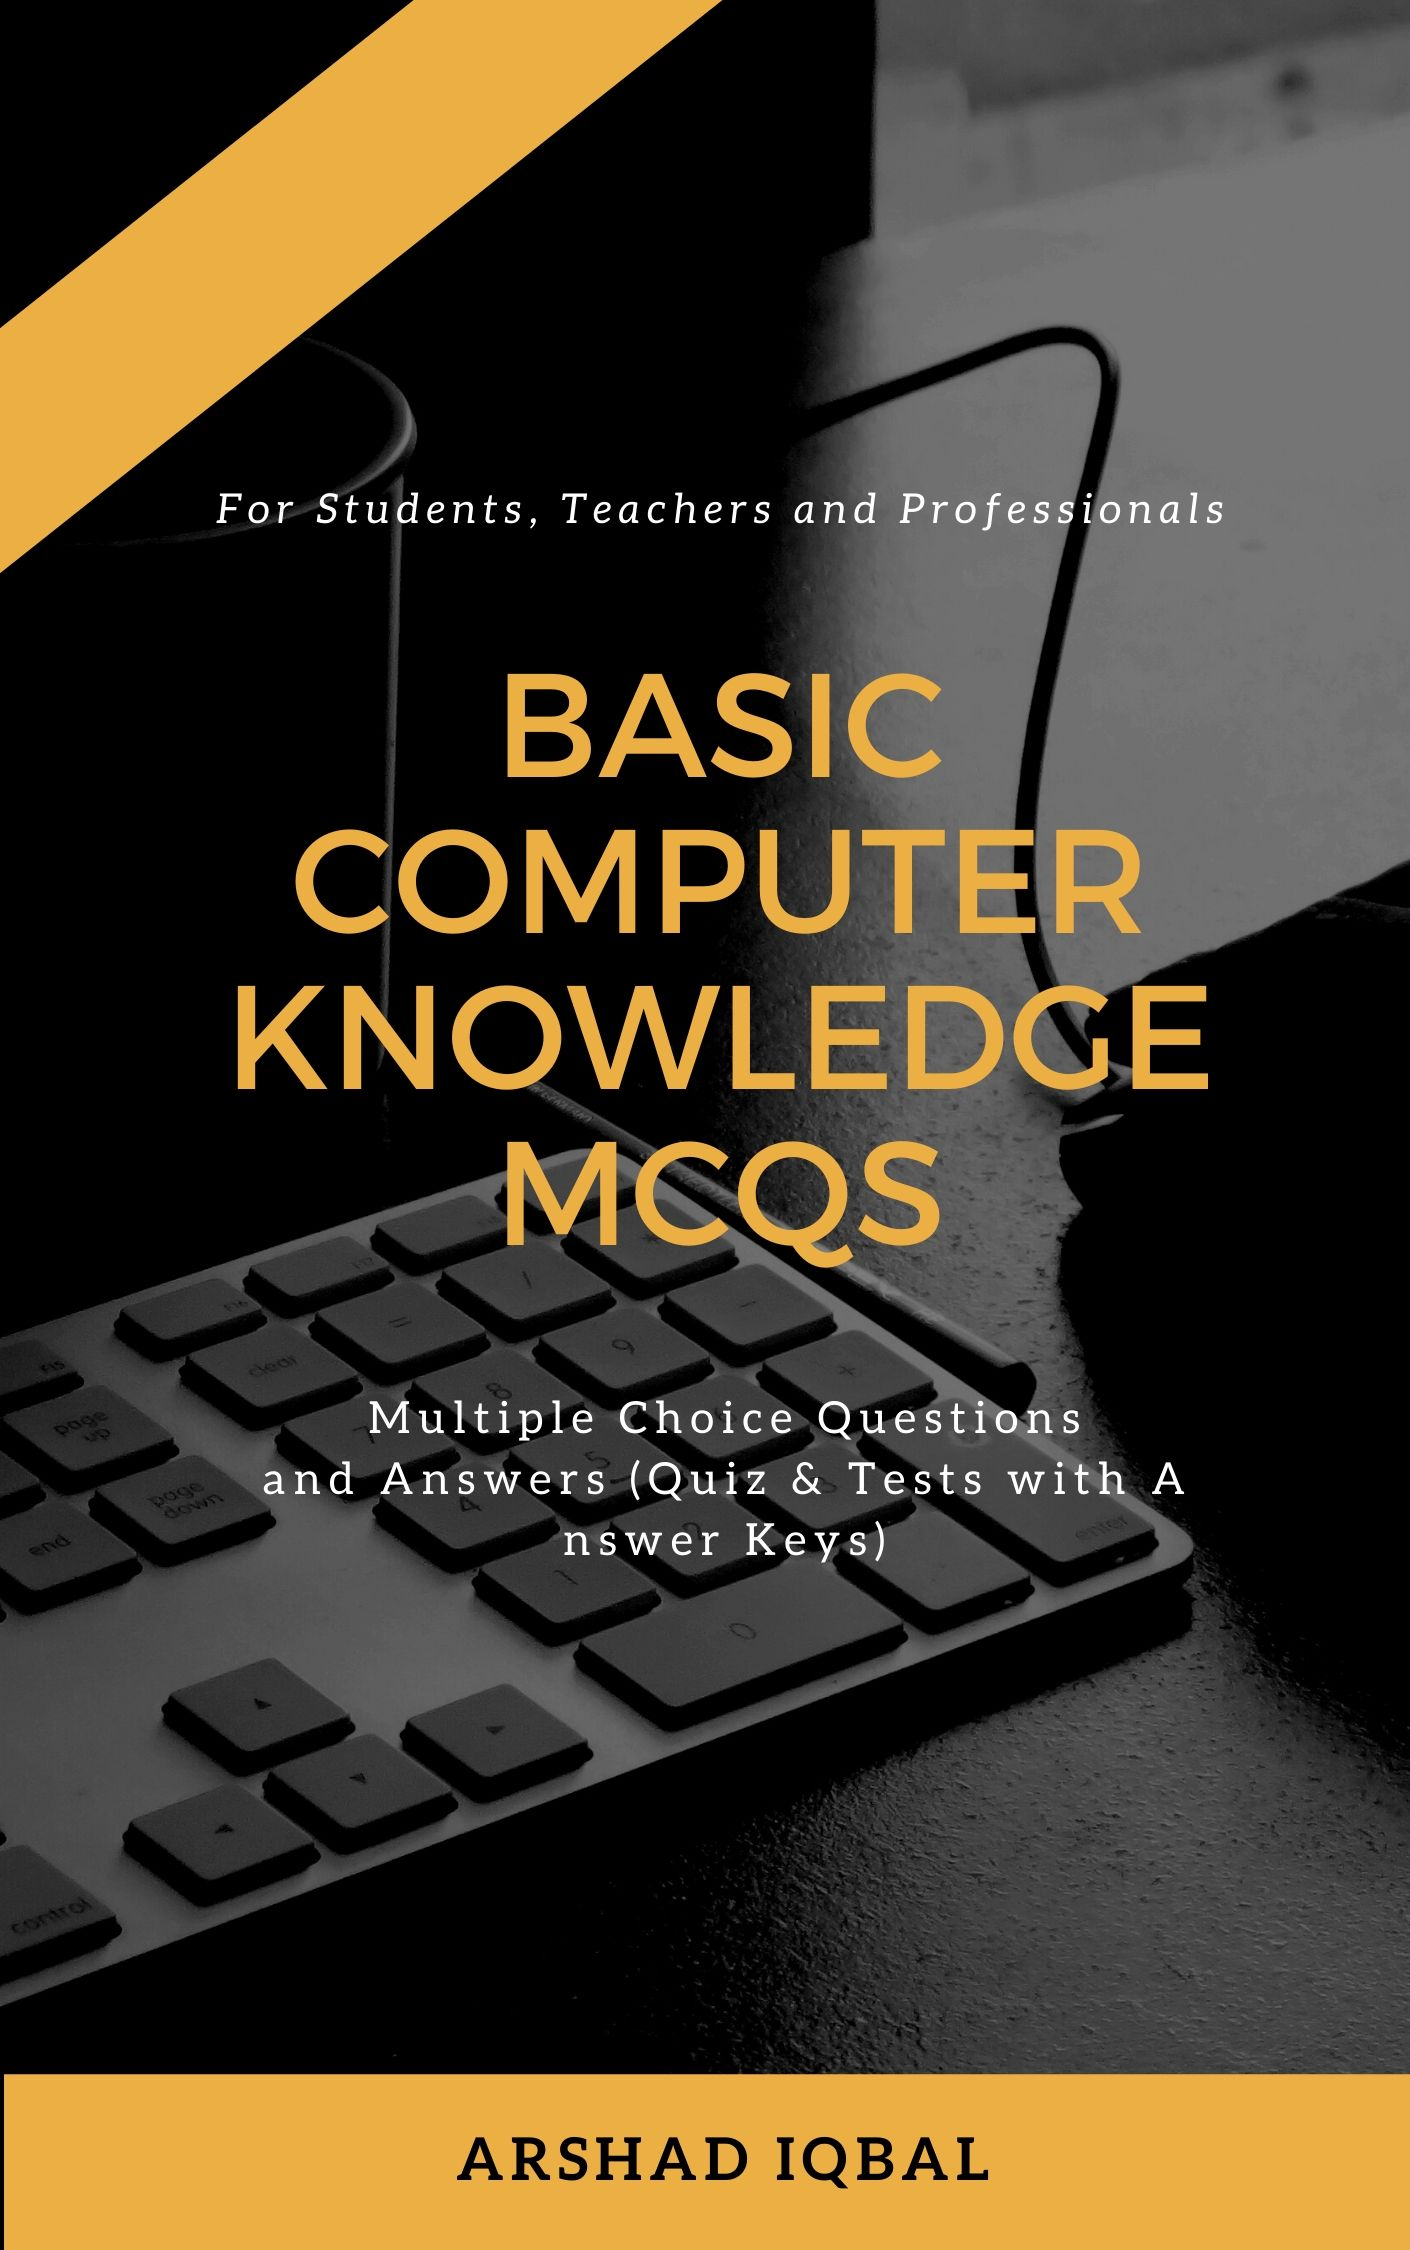 Basic Computer Knowledge Multiple Choice Questions and Answers (MCQs): Quizzes & Practice Tests with Answer Key